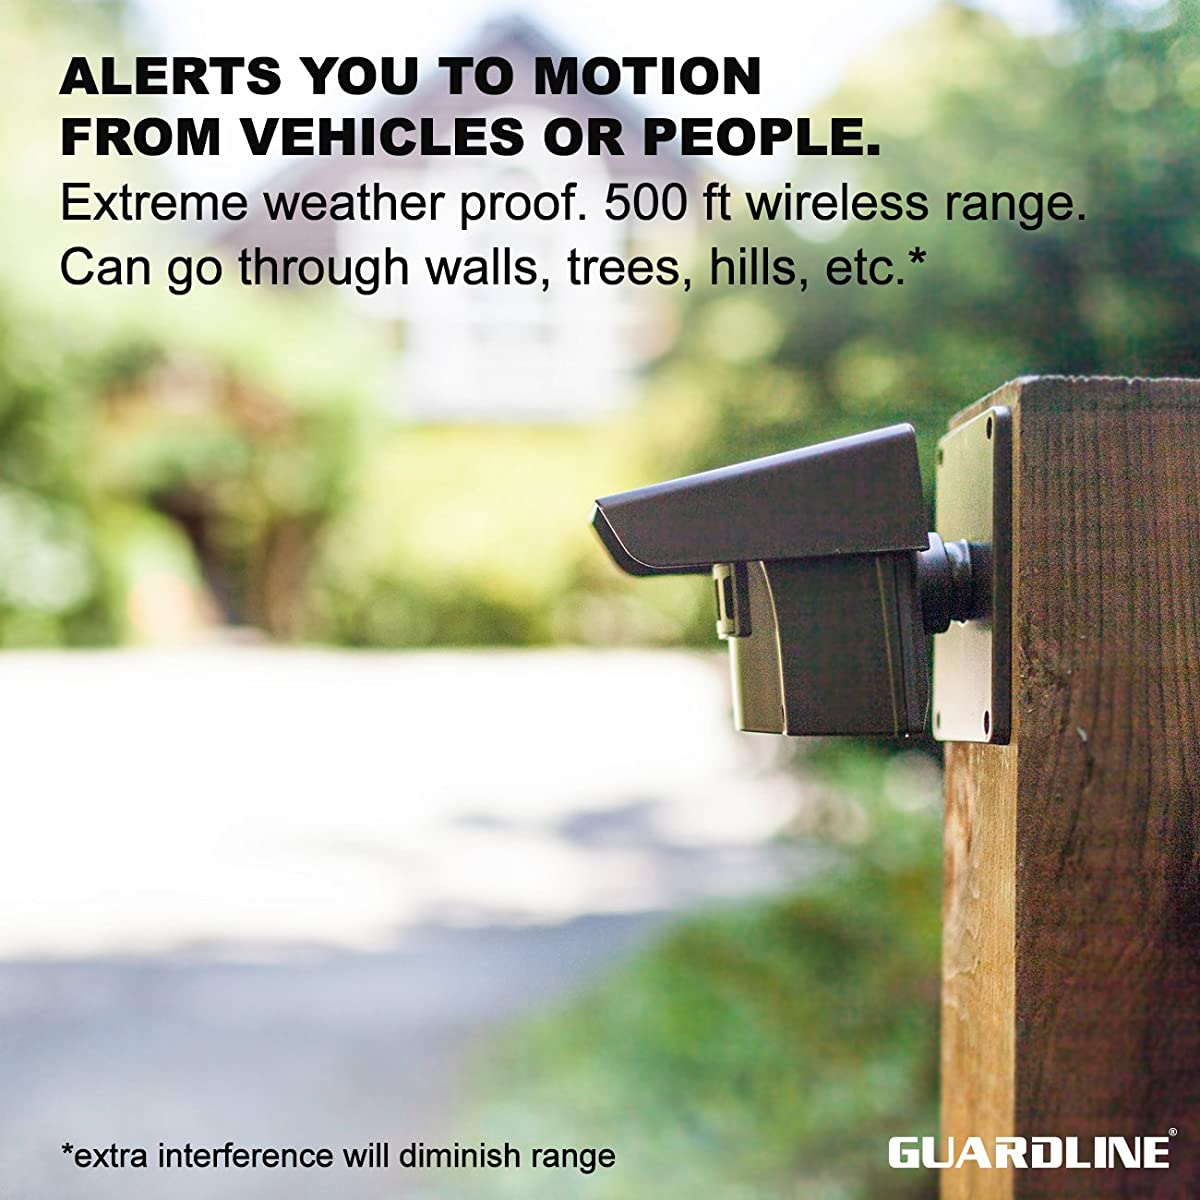 Guardline Wireless Driveway Alarm- Top Rated Outdoor Weatherproof Motion Sensor & Detector- Best DIY Security Alert System- Stay Safe & Protect Home, Outside Property, Yard, Garage, Gate, Pool.